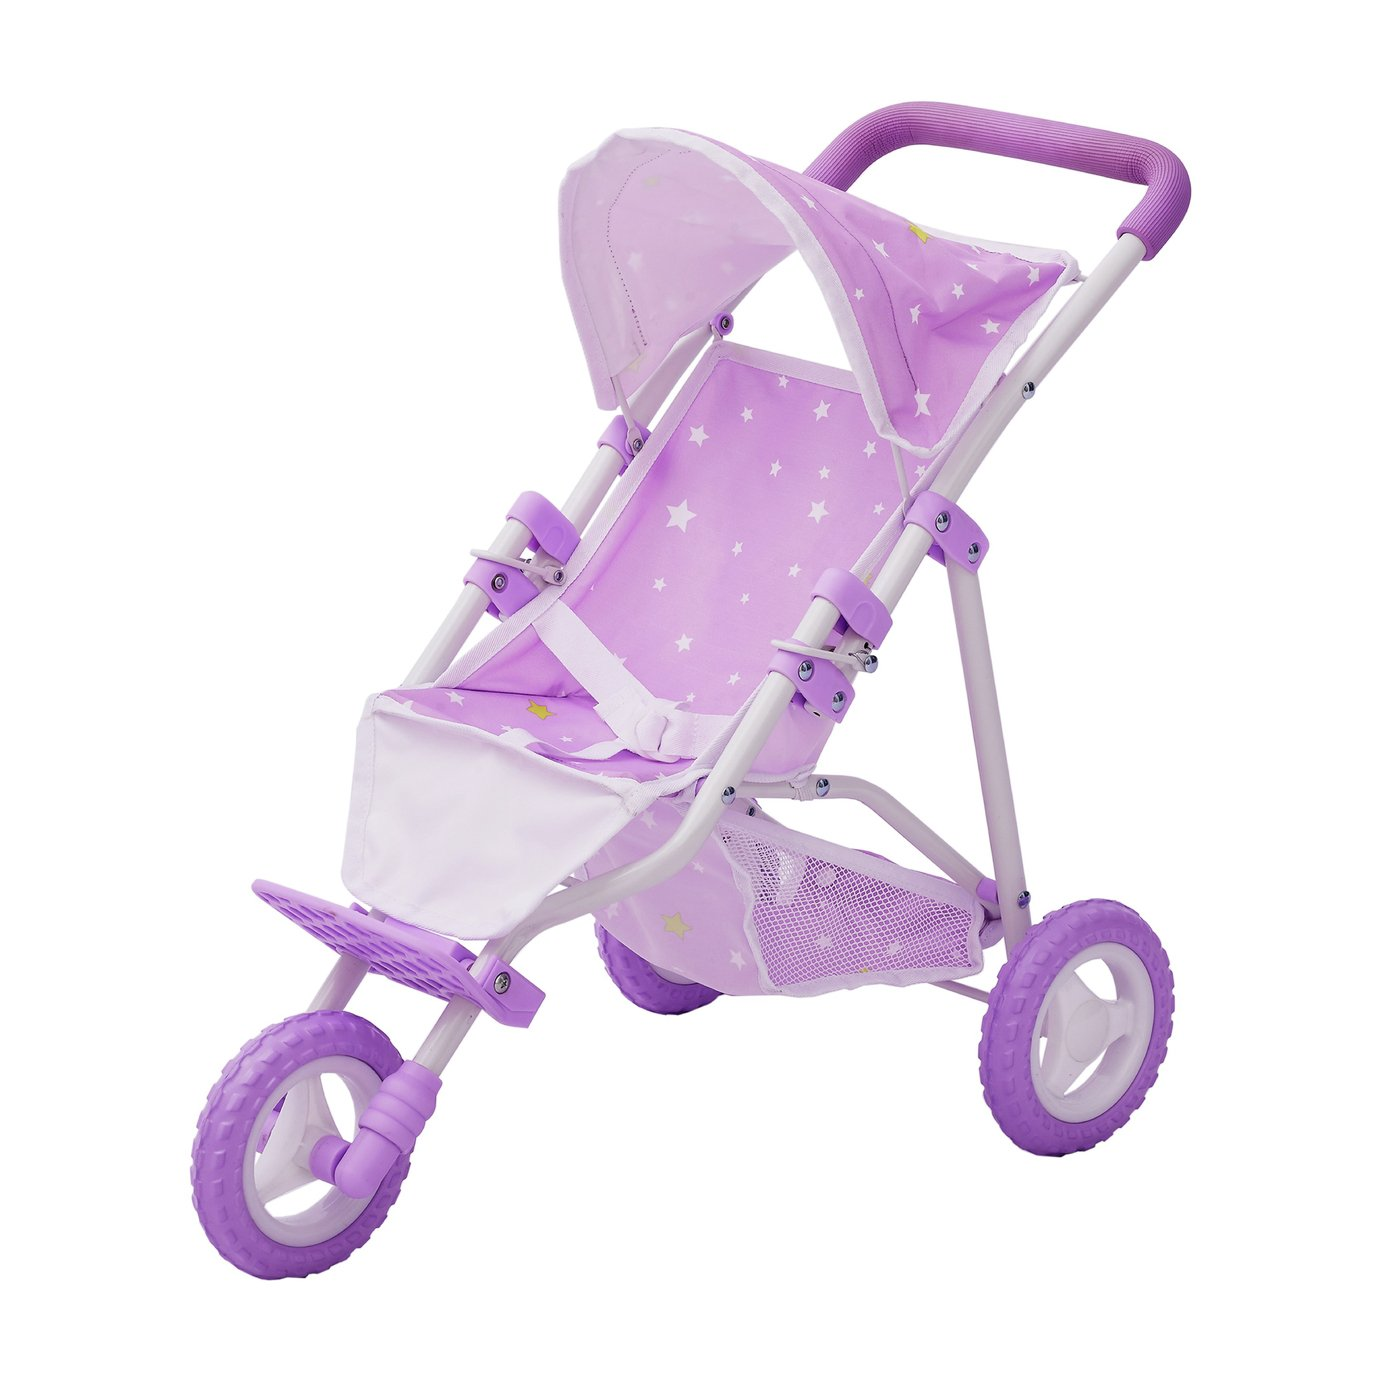 Olivias Little World Twinkle Stars Dolls Jogging Stroller